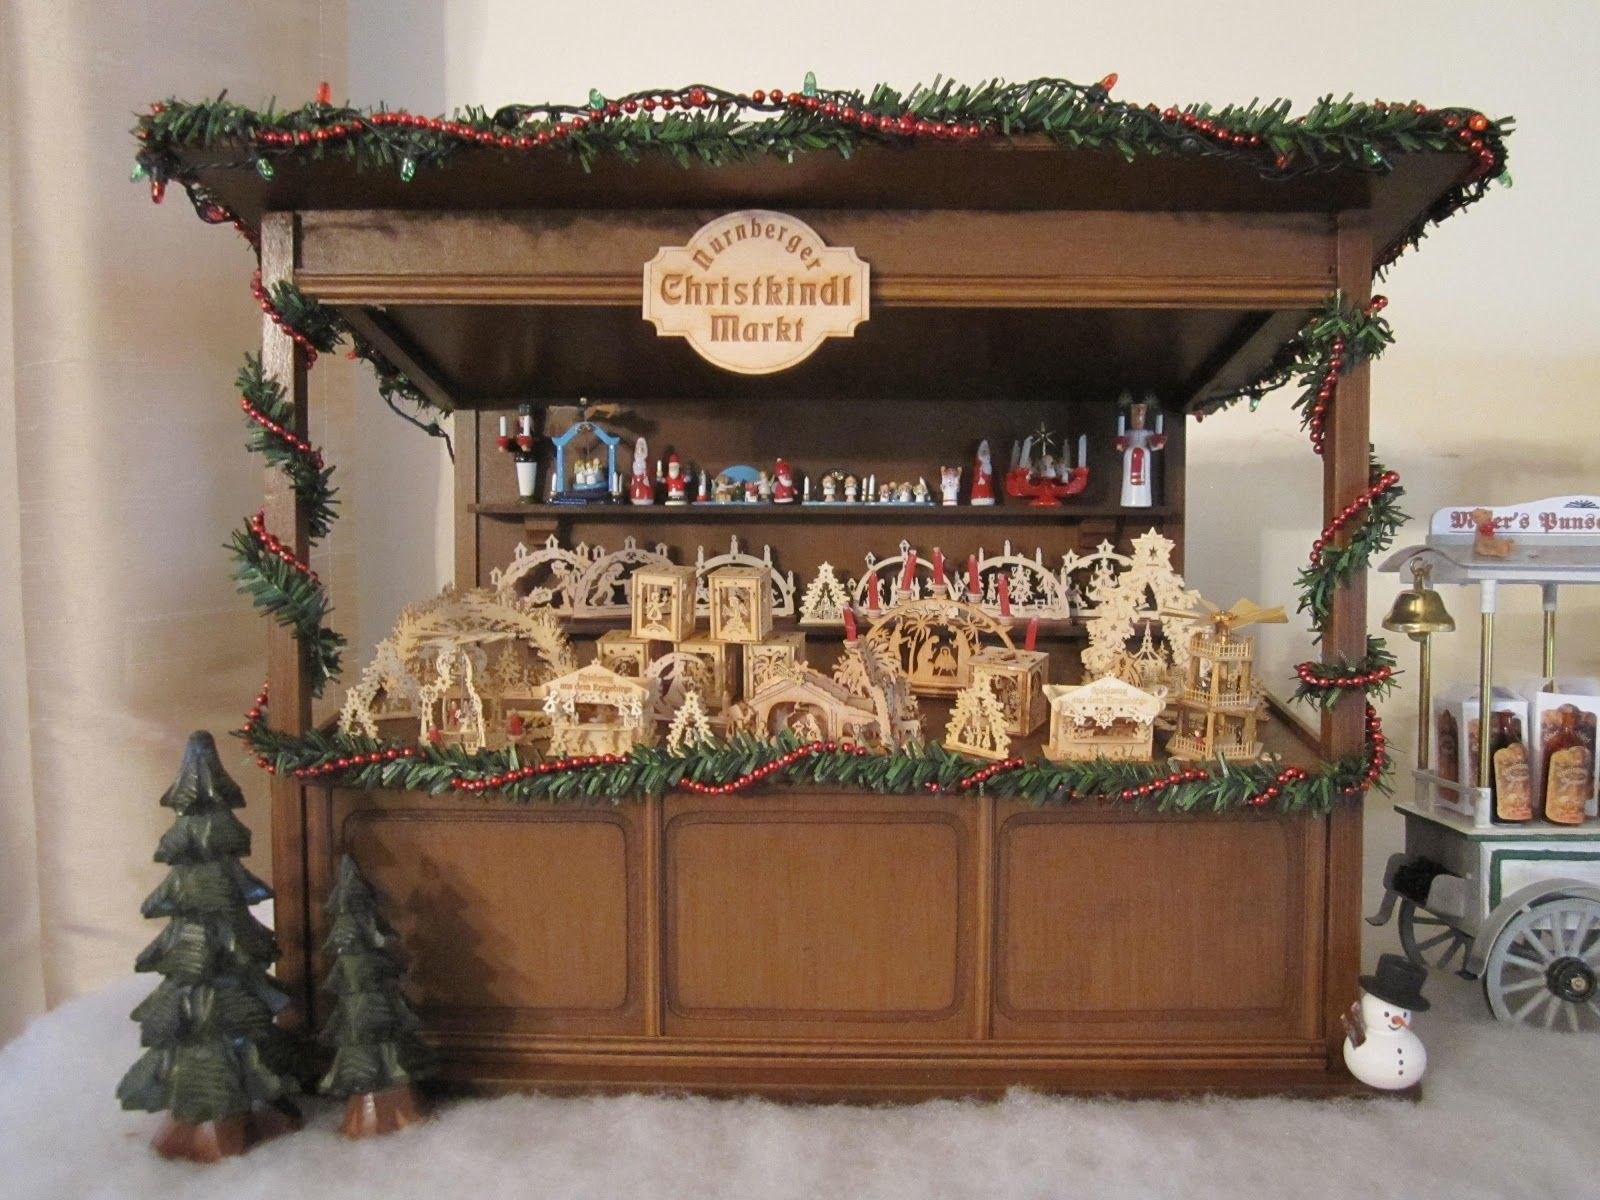 Small Talk Christmas market stall, German christmas